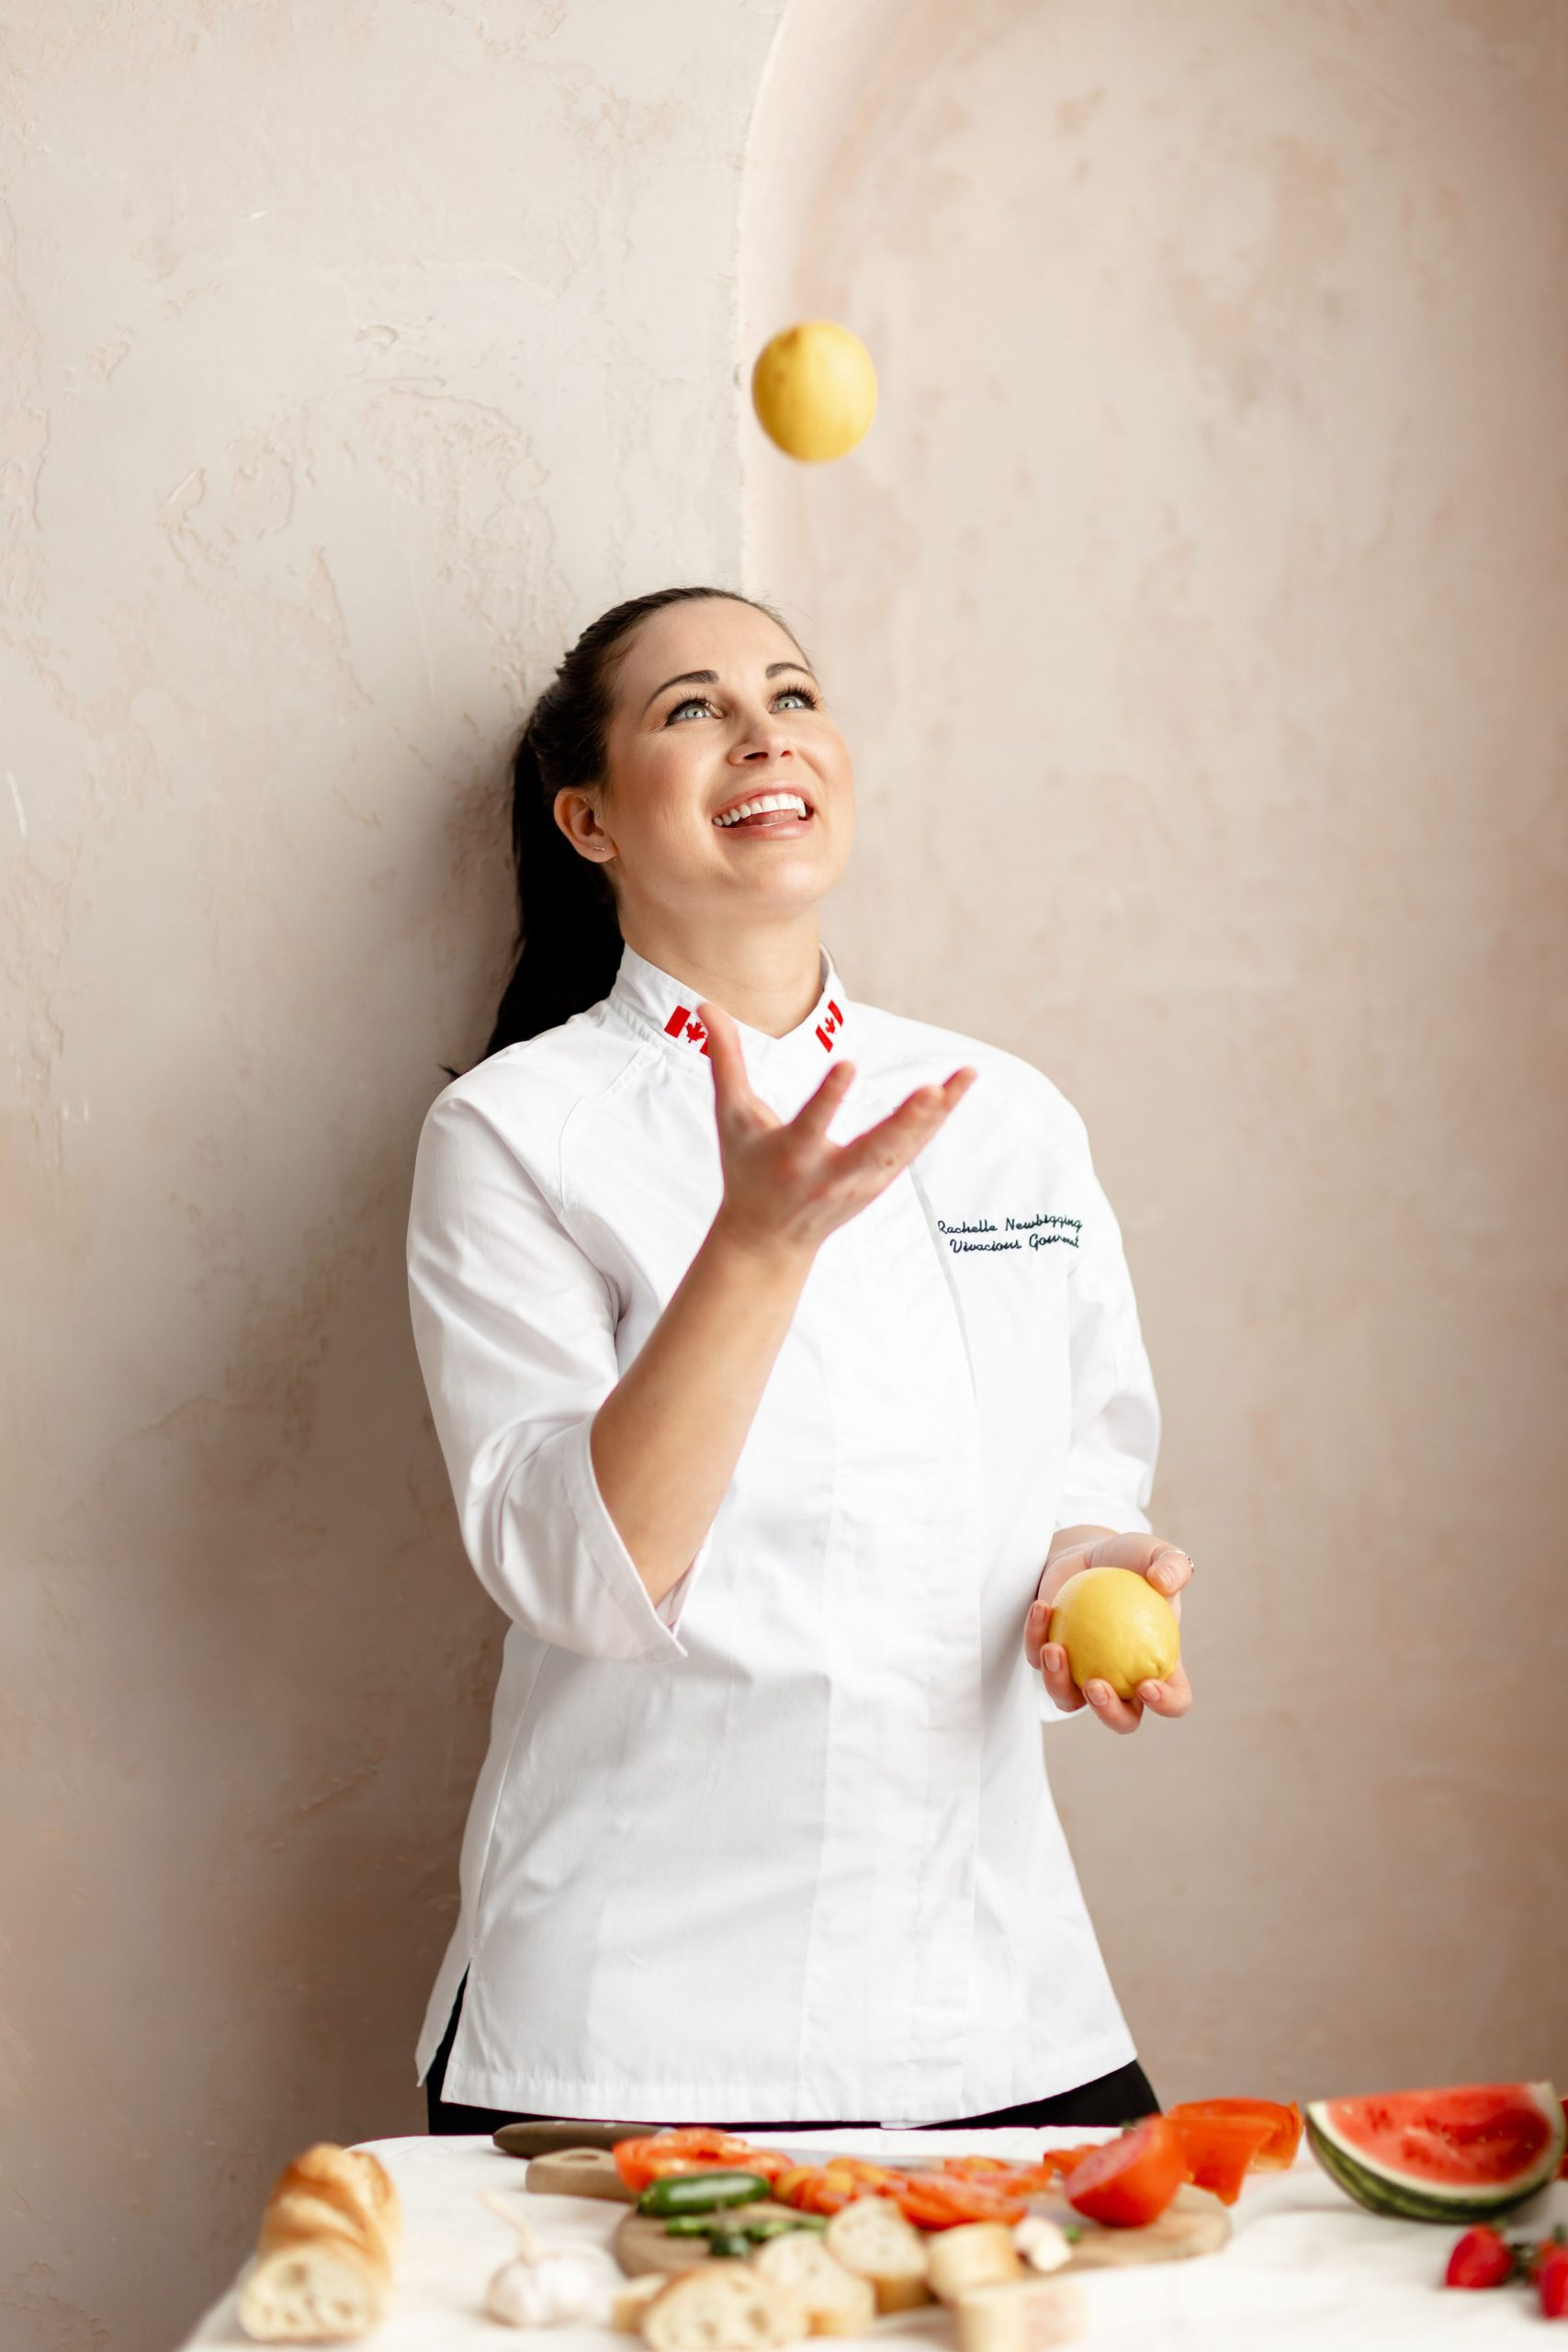 Rachelle is a food blogger in a chef's jacket tossing a lemon in the air